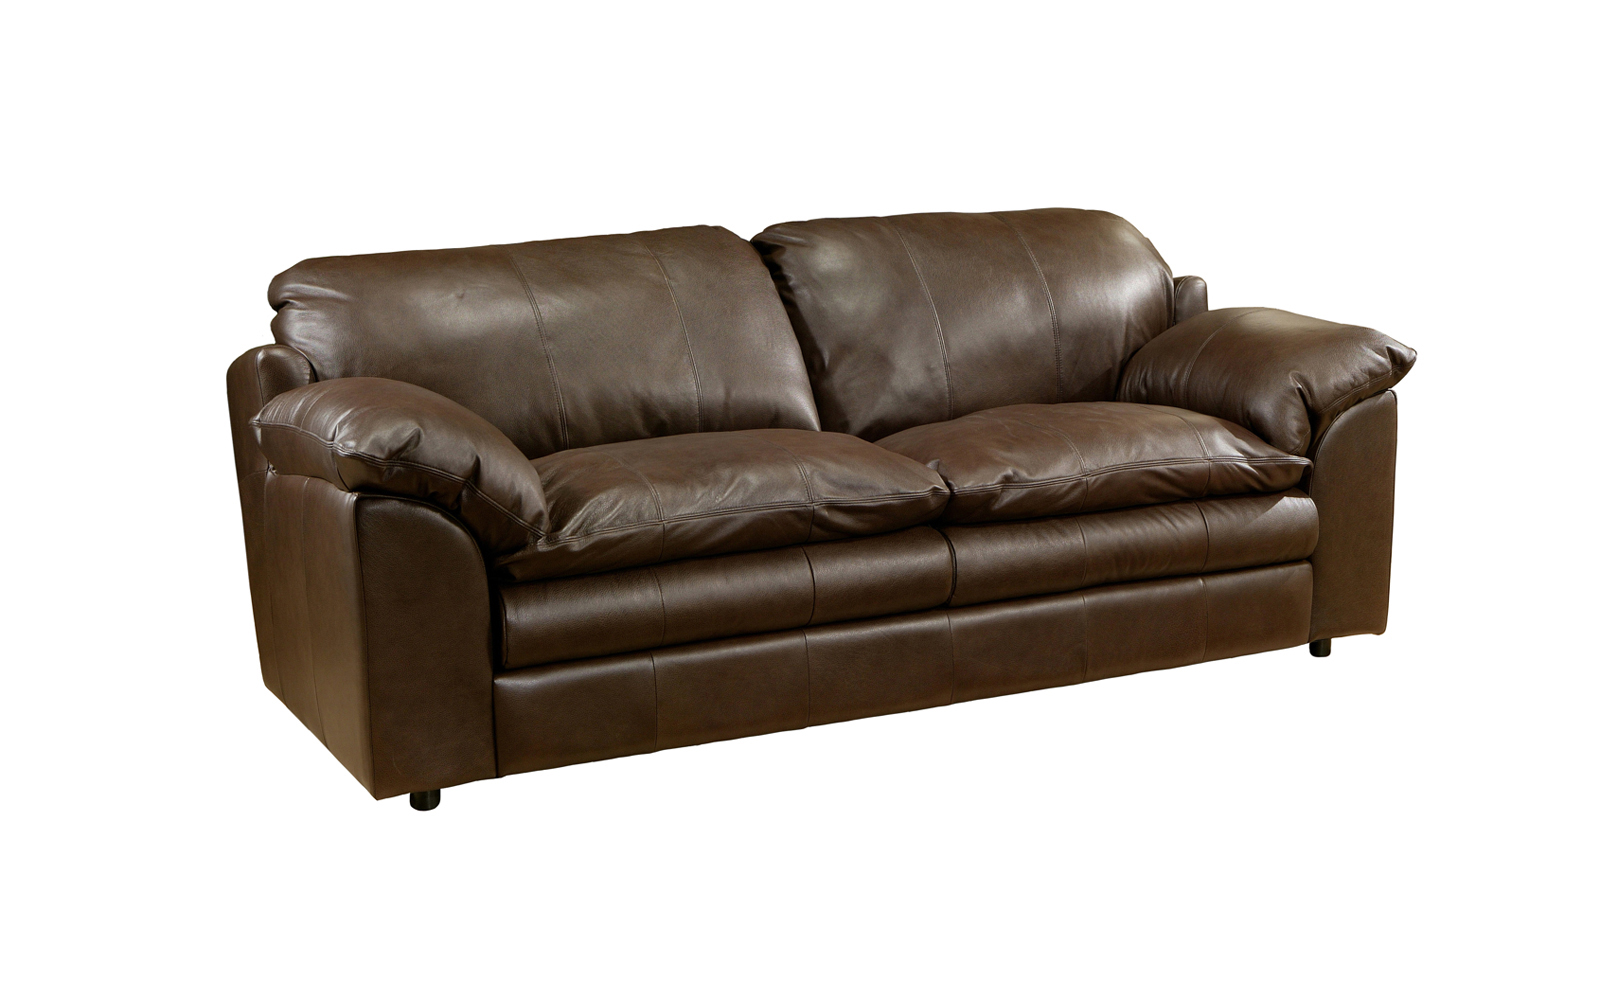 Encino Sofa Arizona Leather Interiors